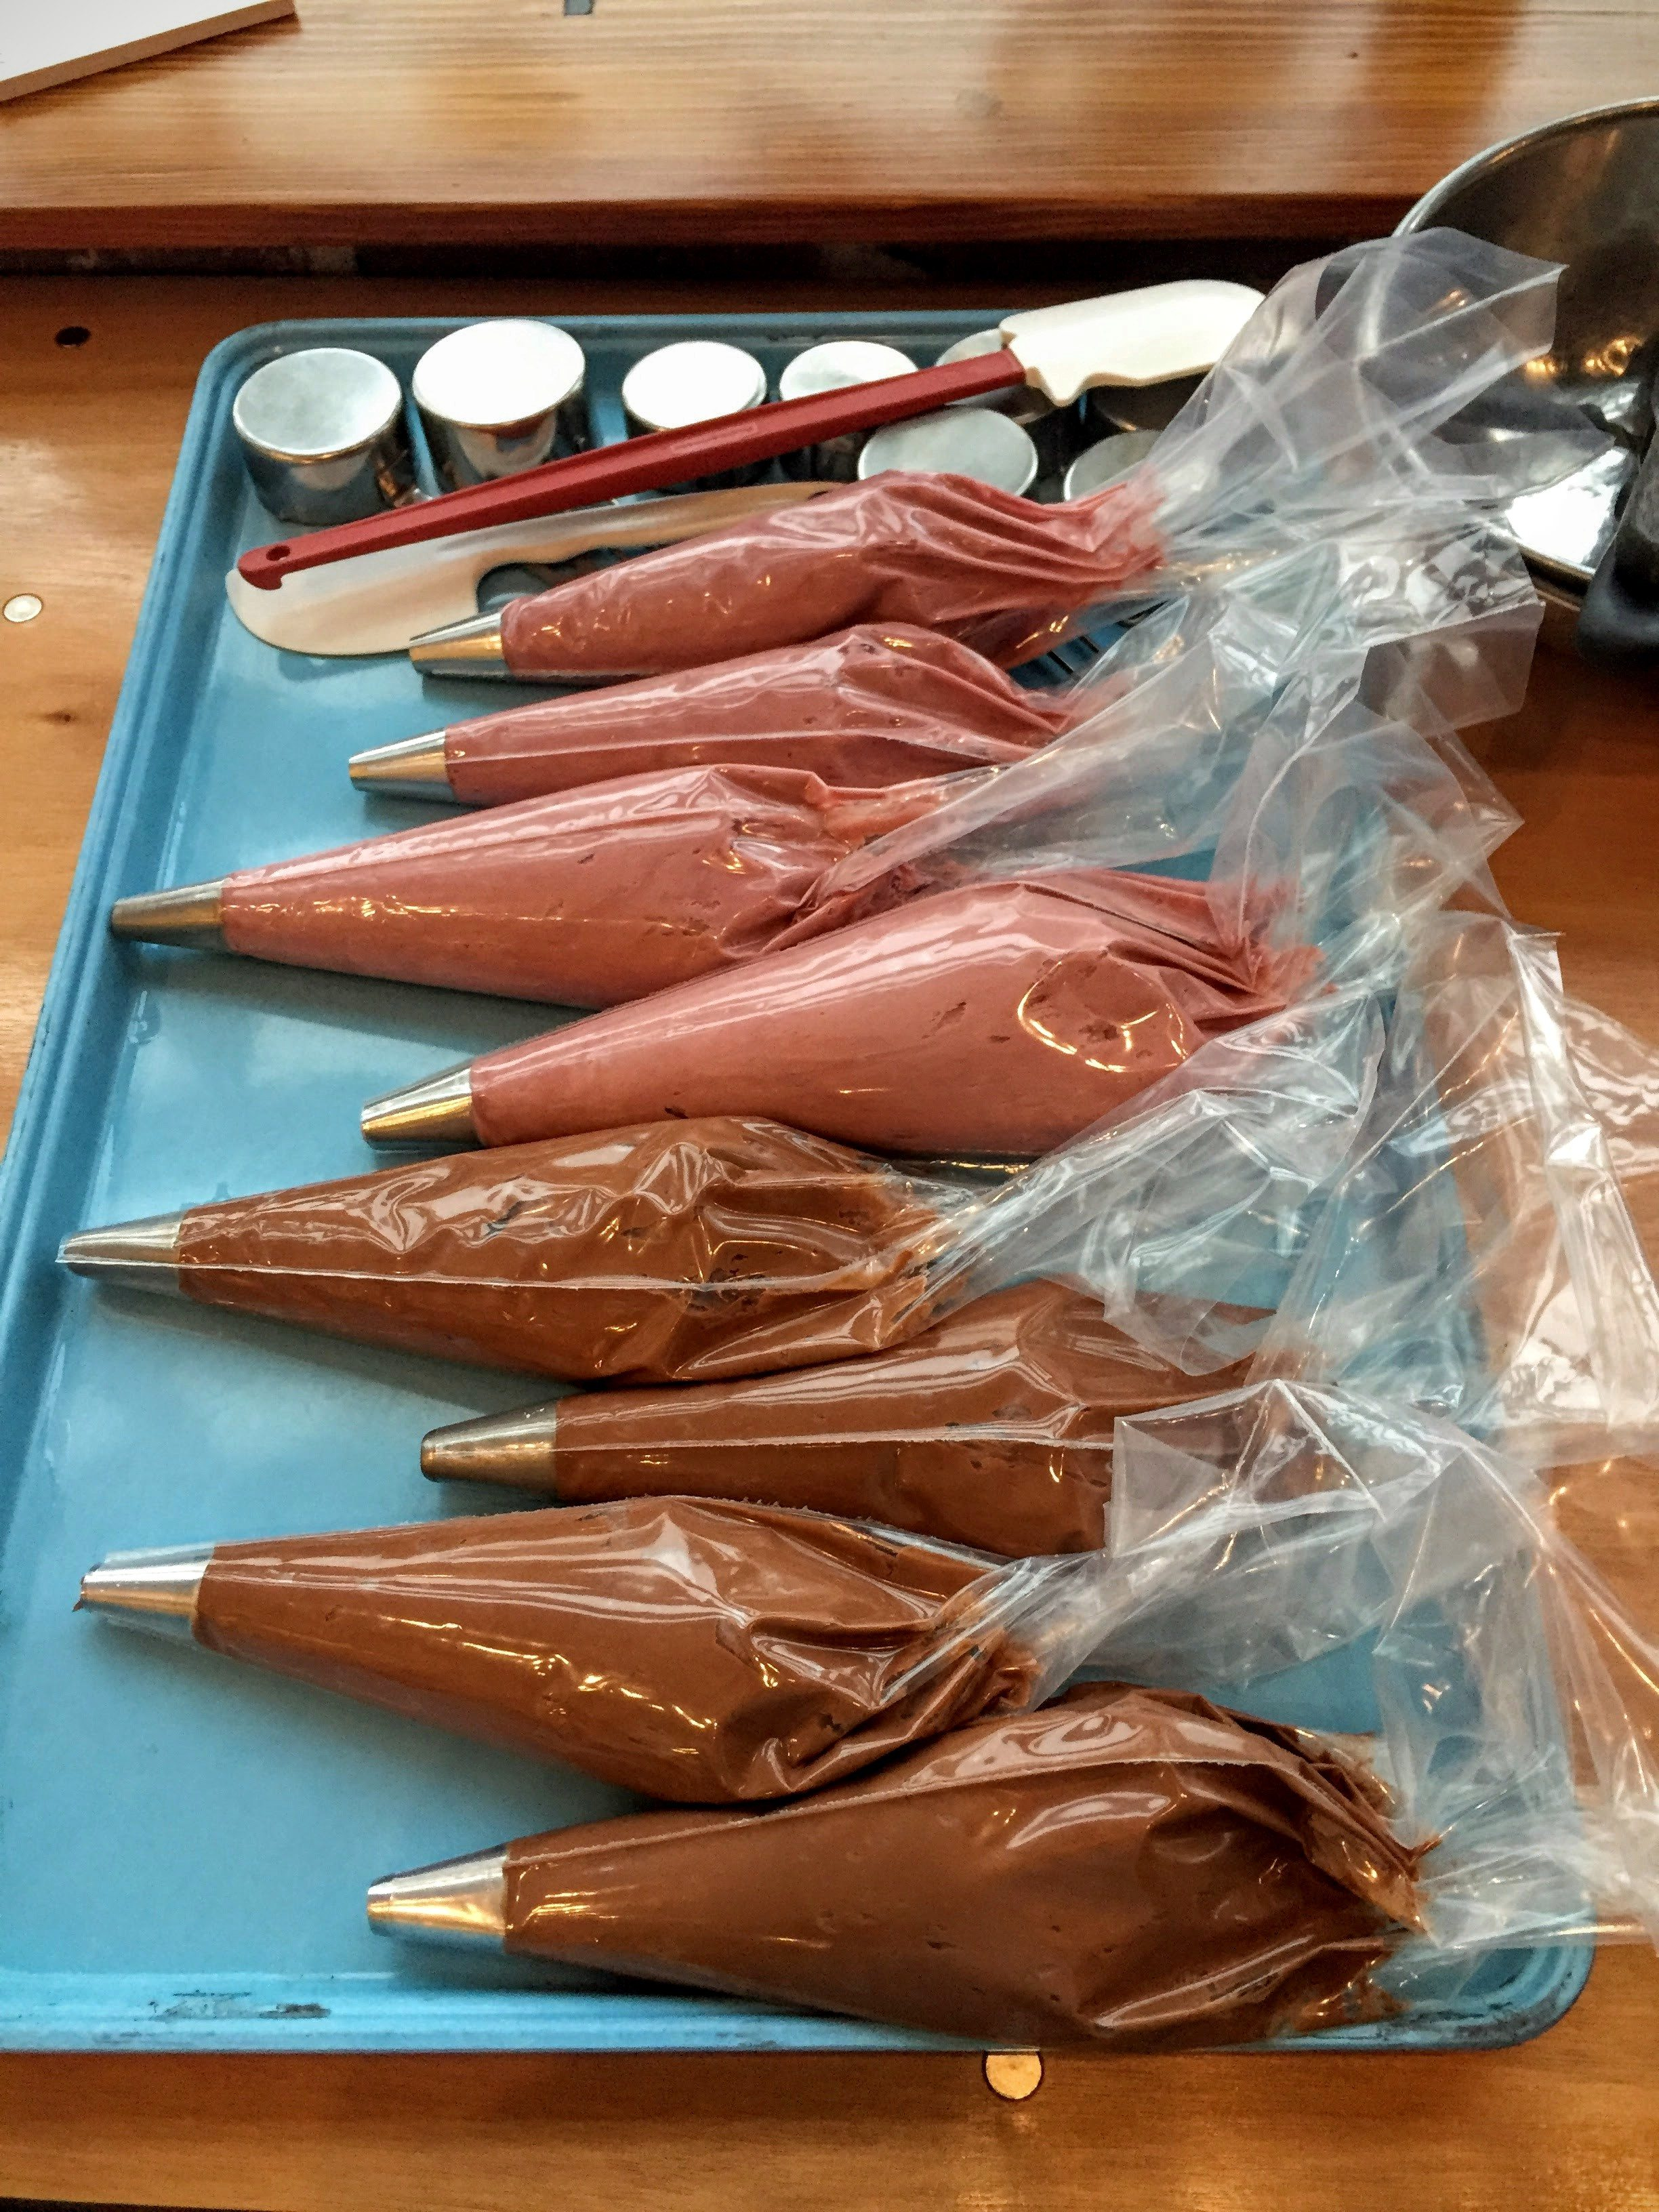 One of the first things I saw when we walked into the building were these piping bags full of frosting. They were for our decorating portion of the tour, and they contained chocolate icing and red wine icing (yes, I said red wine!!!)!